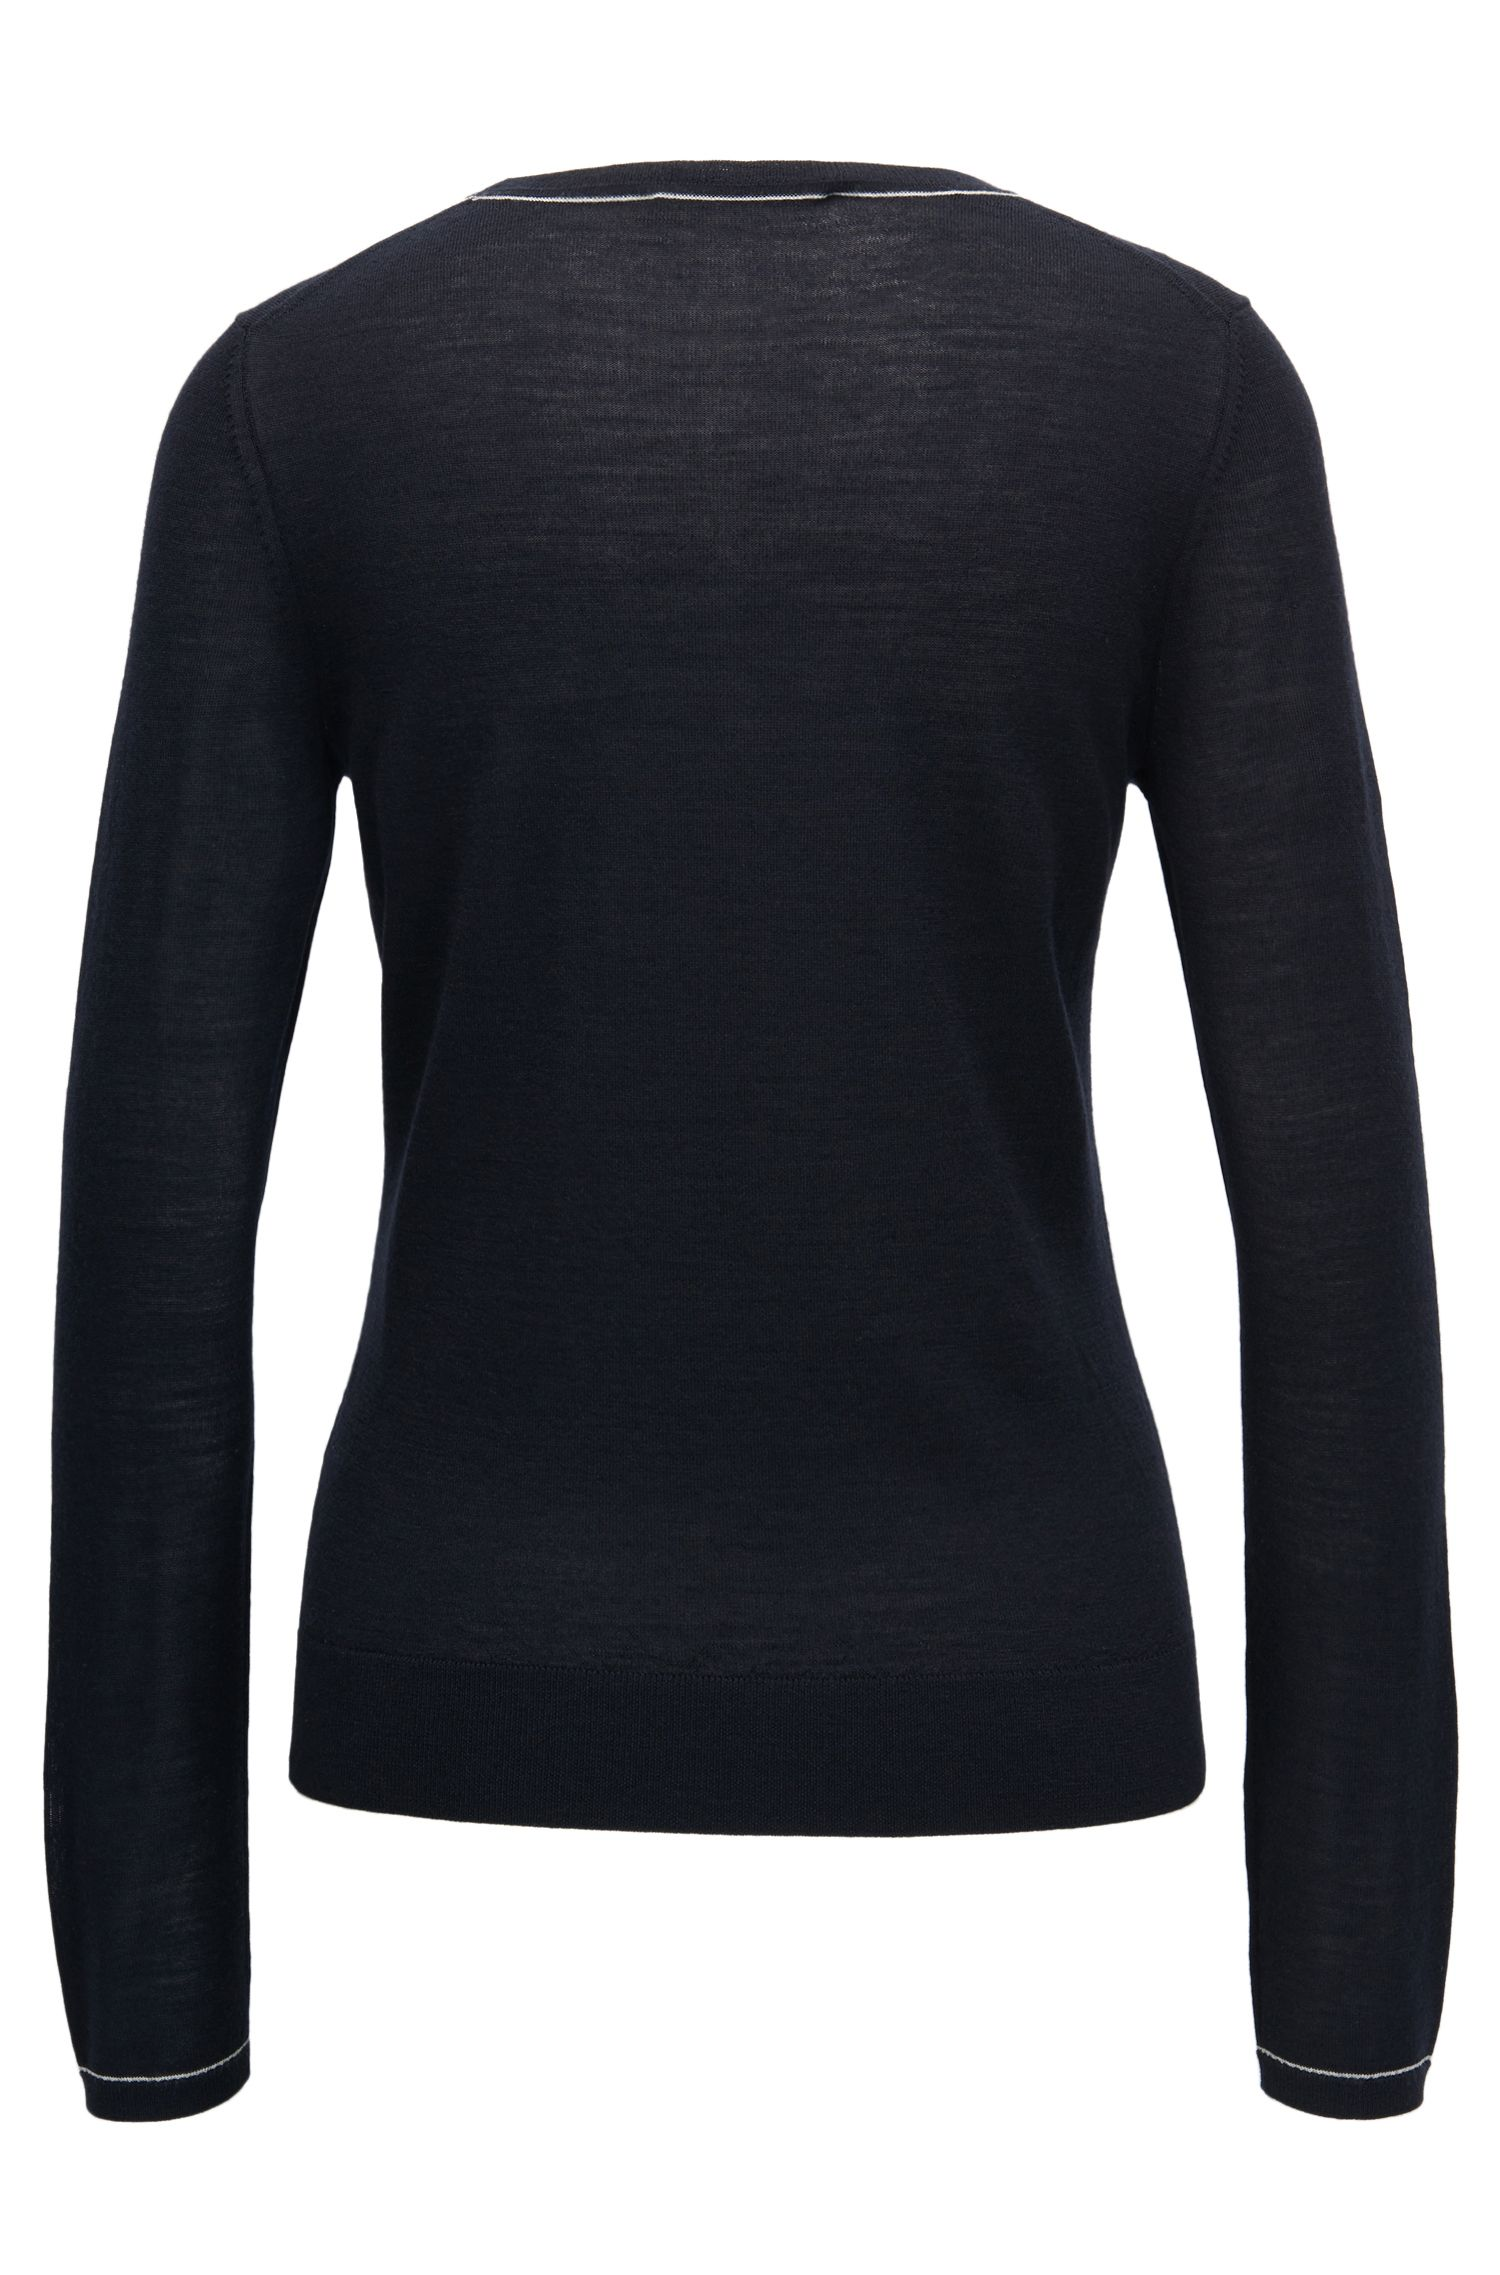 Crew-neck sweater in lightweight virgin wool